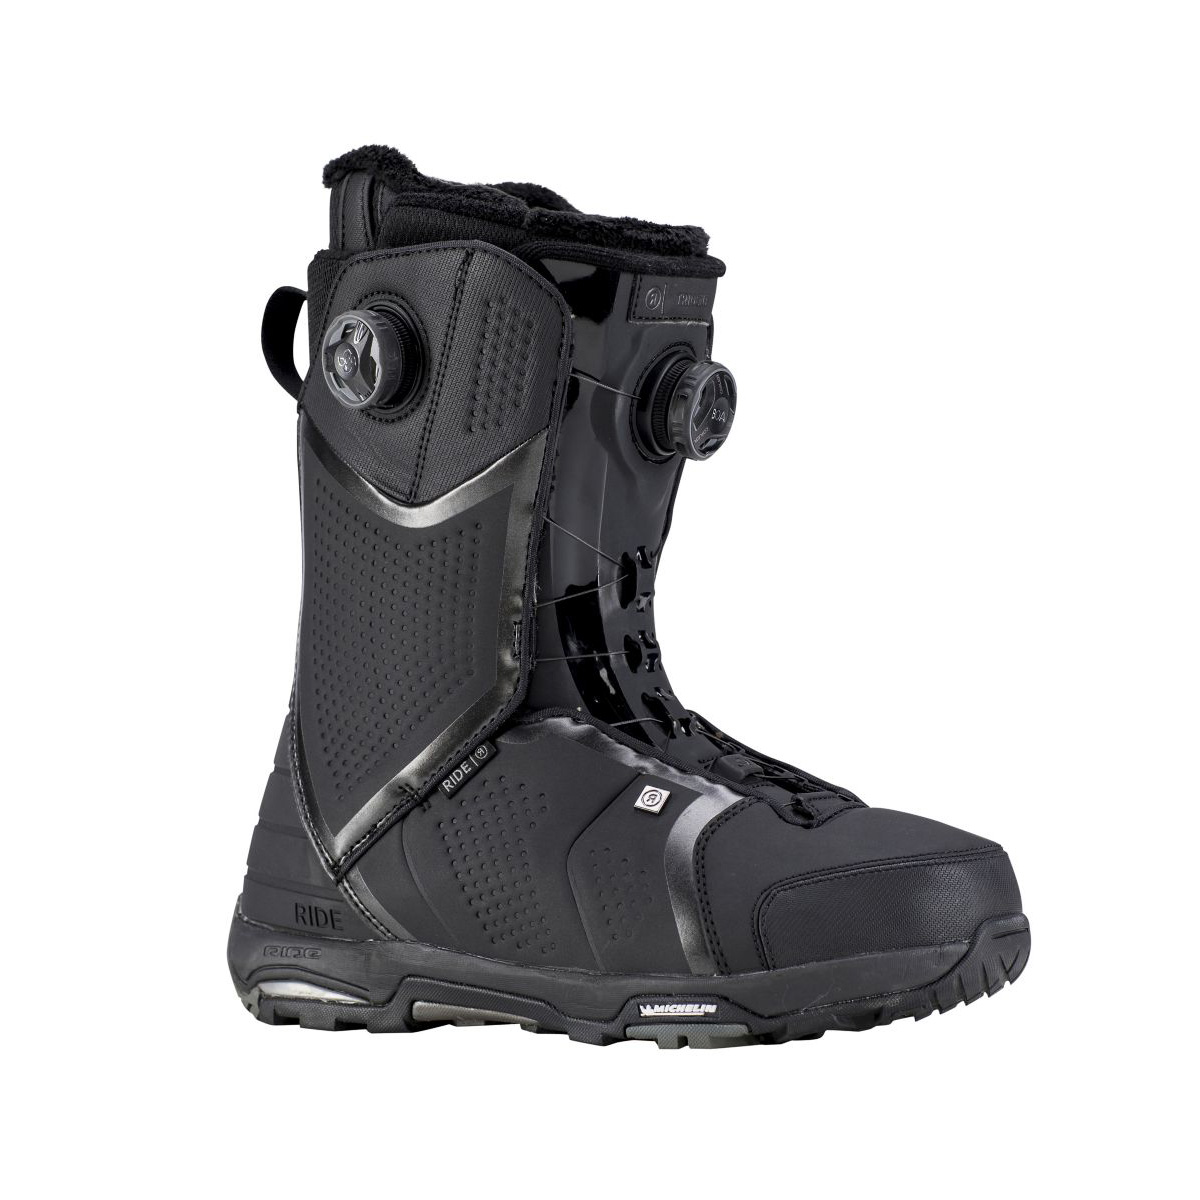 buy online fd772 474ca Ride Trident Snowboard Boots 2019   Snowboard Boots  The Board Basement